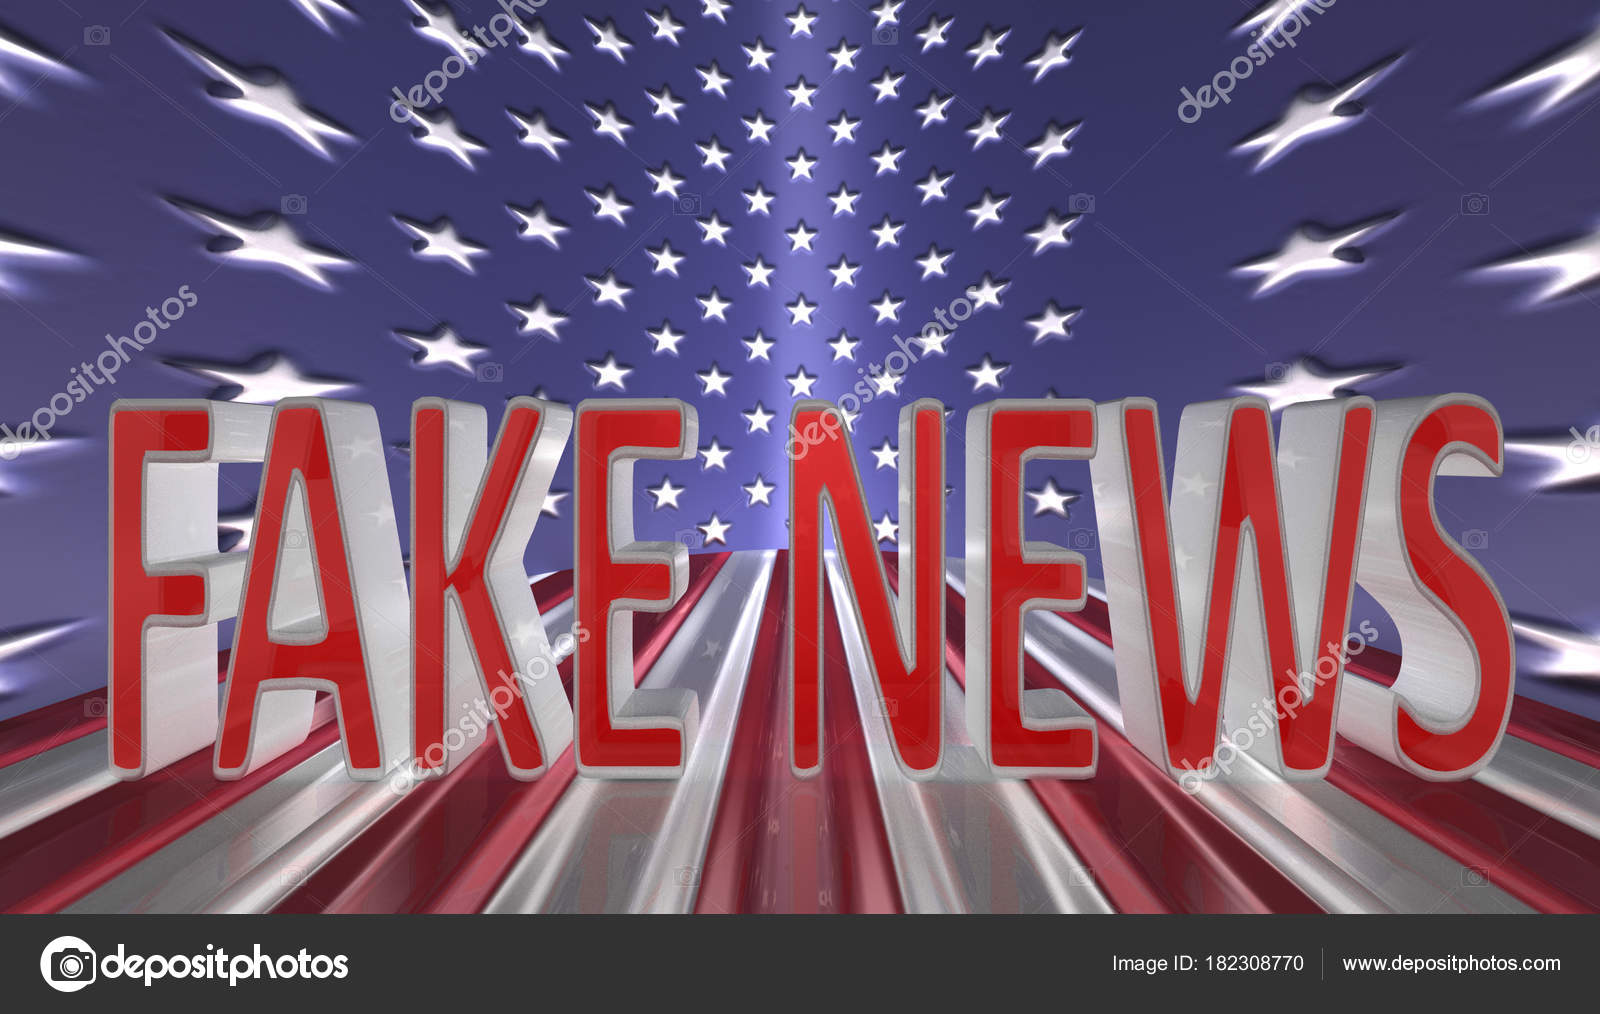 fake news in red letters with a silver border against an american flag background photo by marietjie